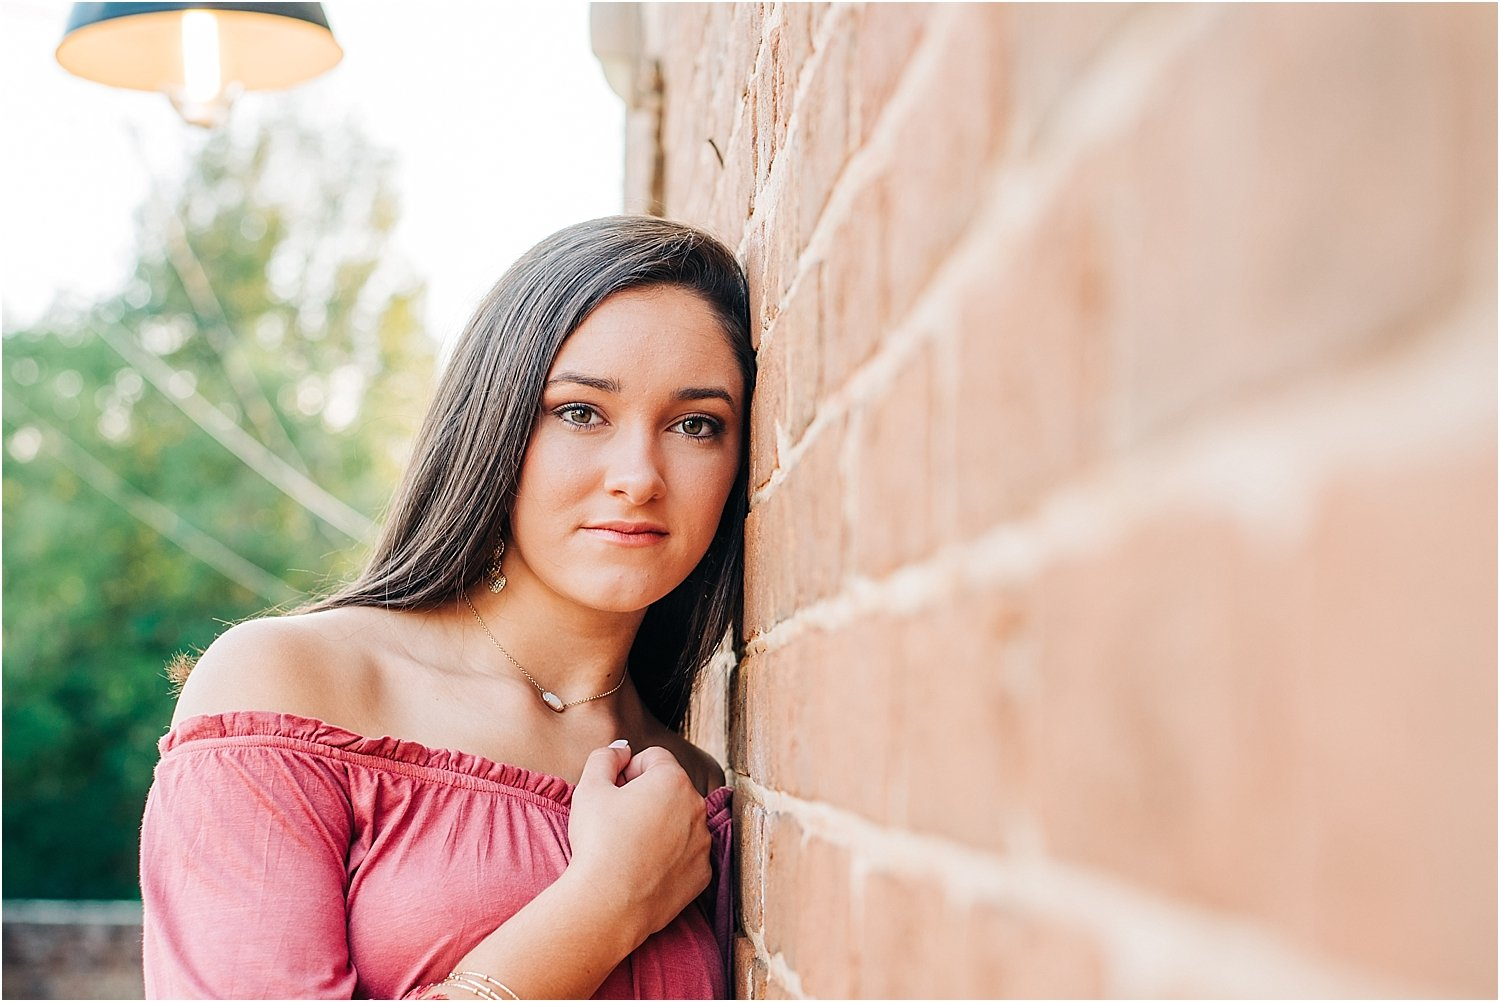 Pensive senior portrait against wall in Burlington, NC.